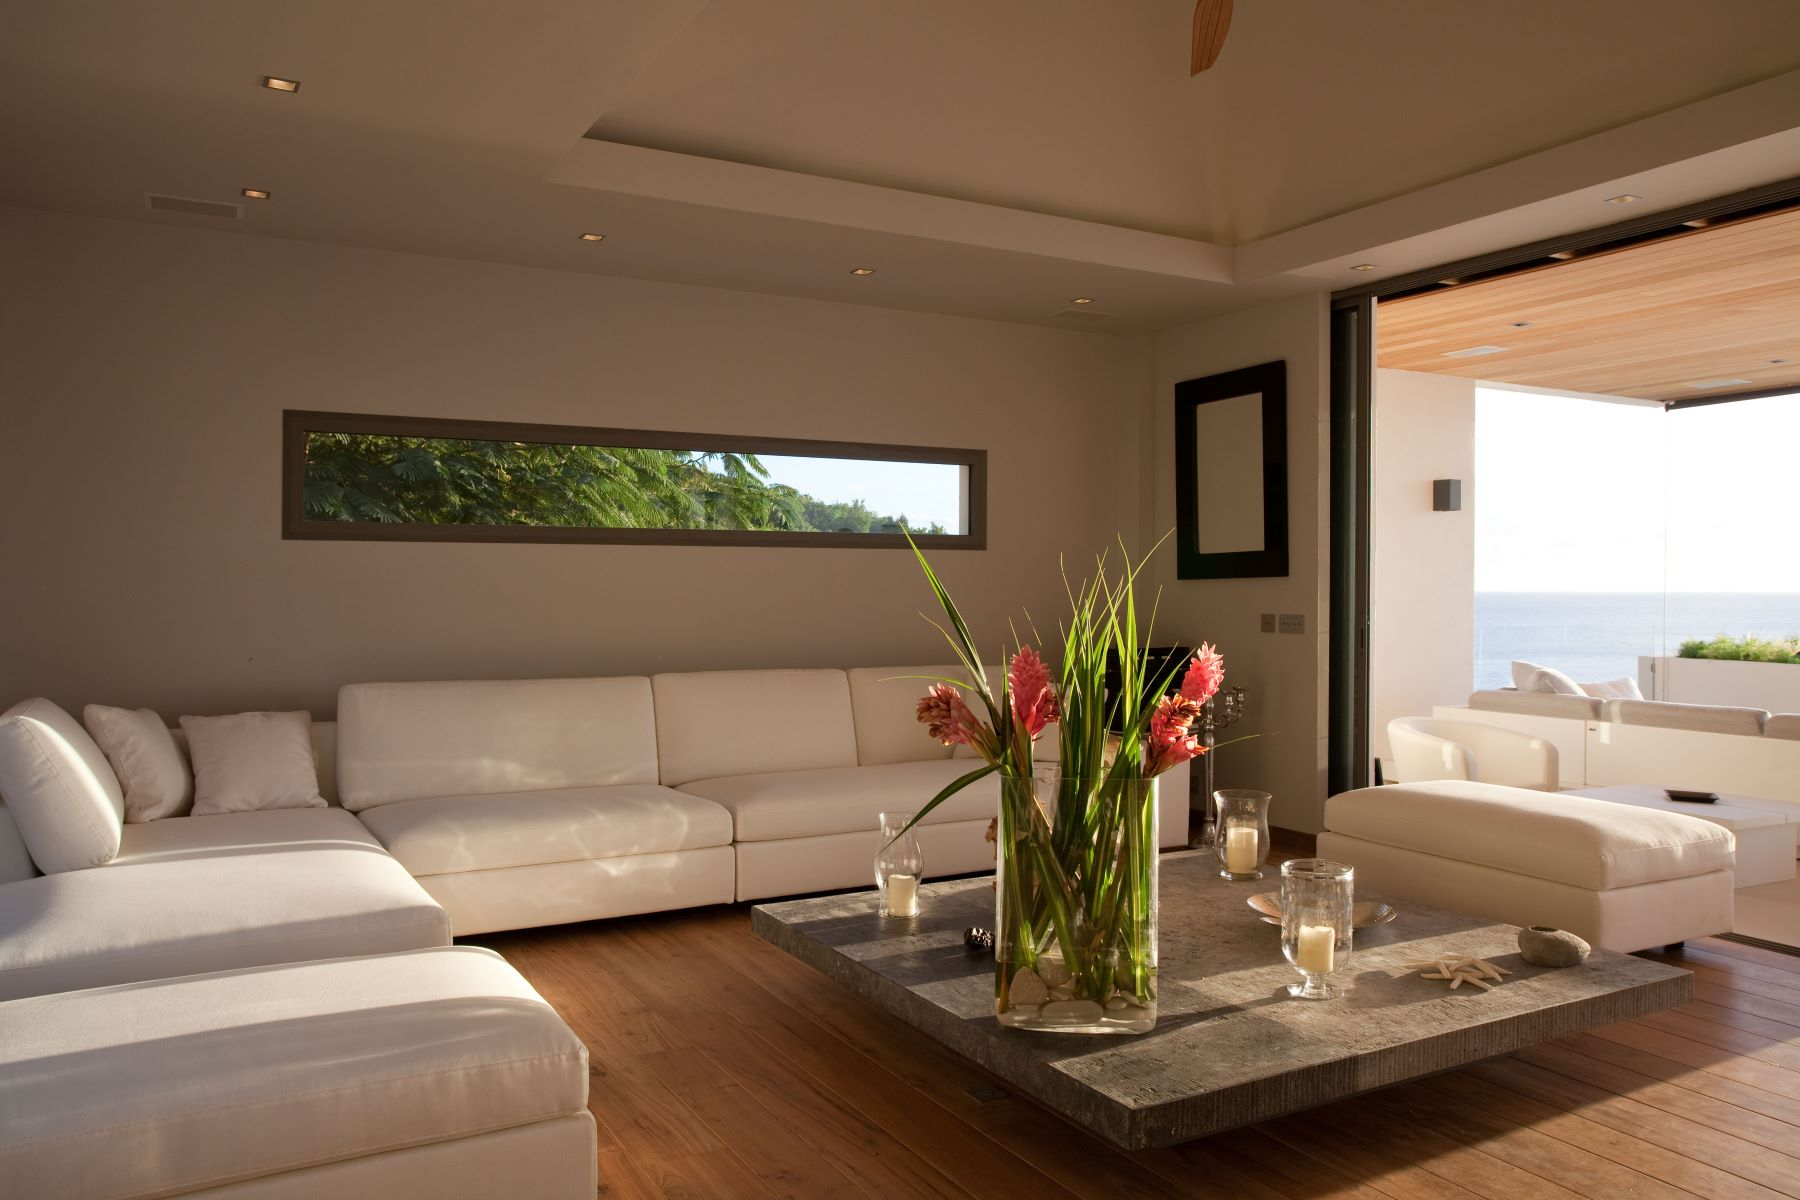 Additional photo for property listing at Villa Vitti Lurin Lurin, Ciudades En St. Barthélemy 97133 St. Barthelemy